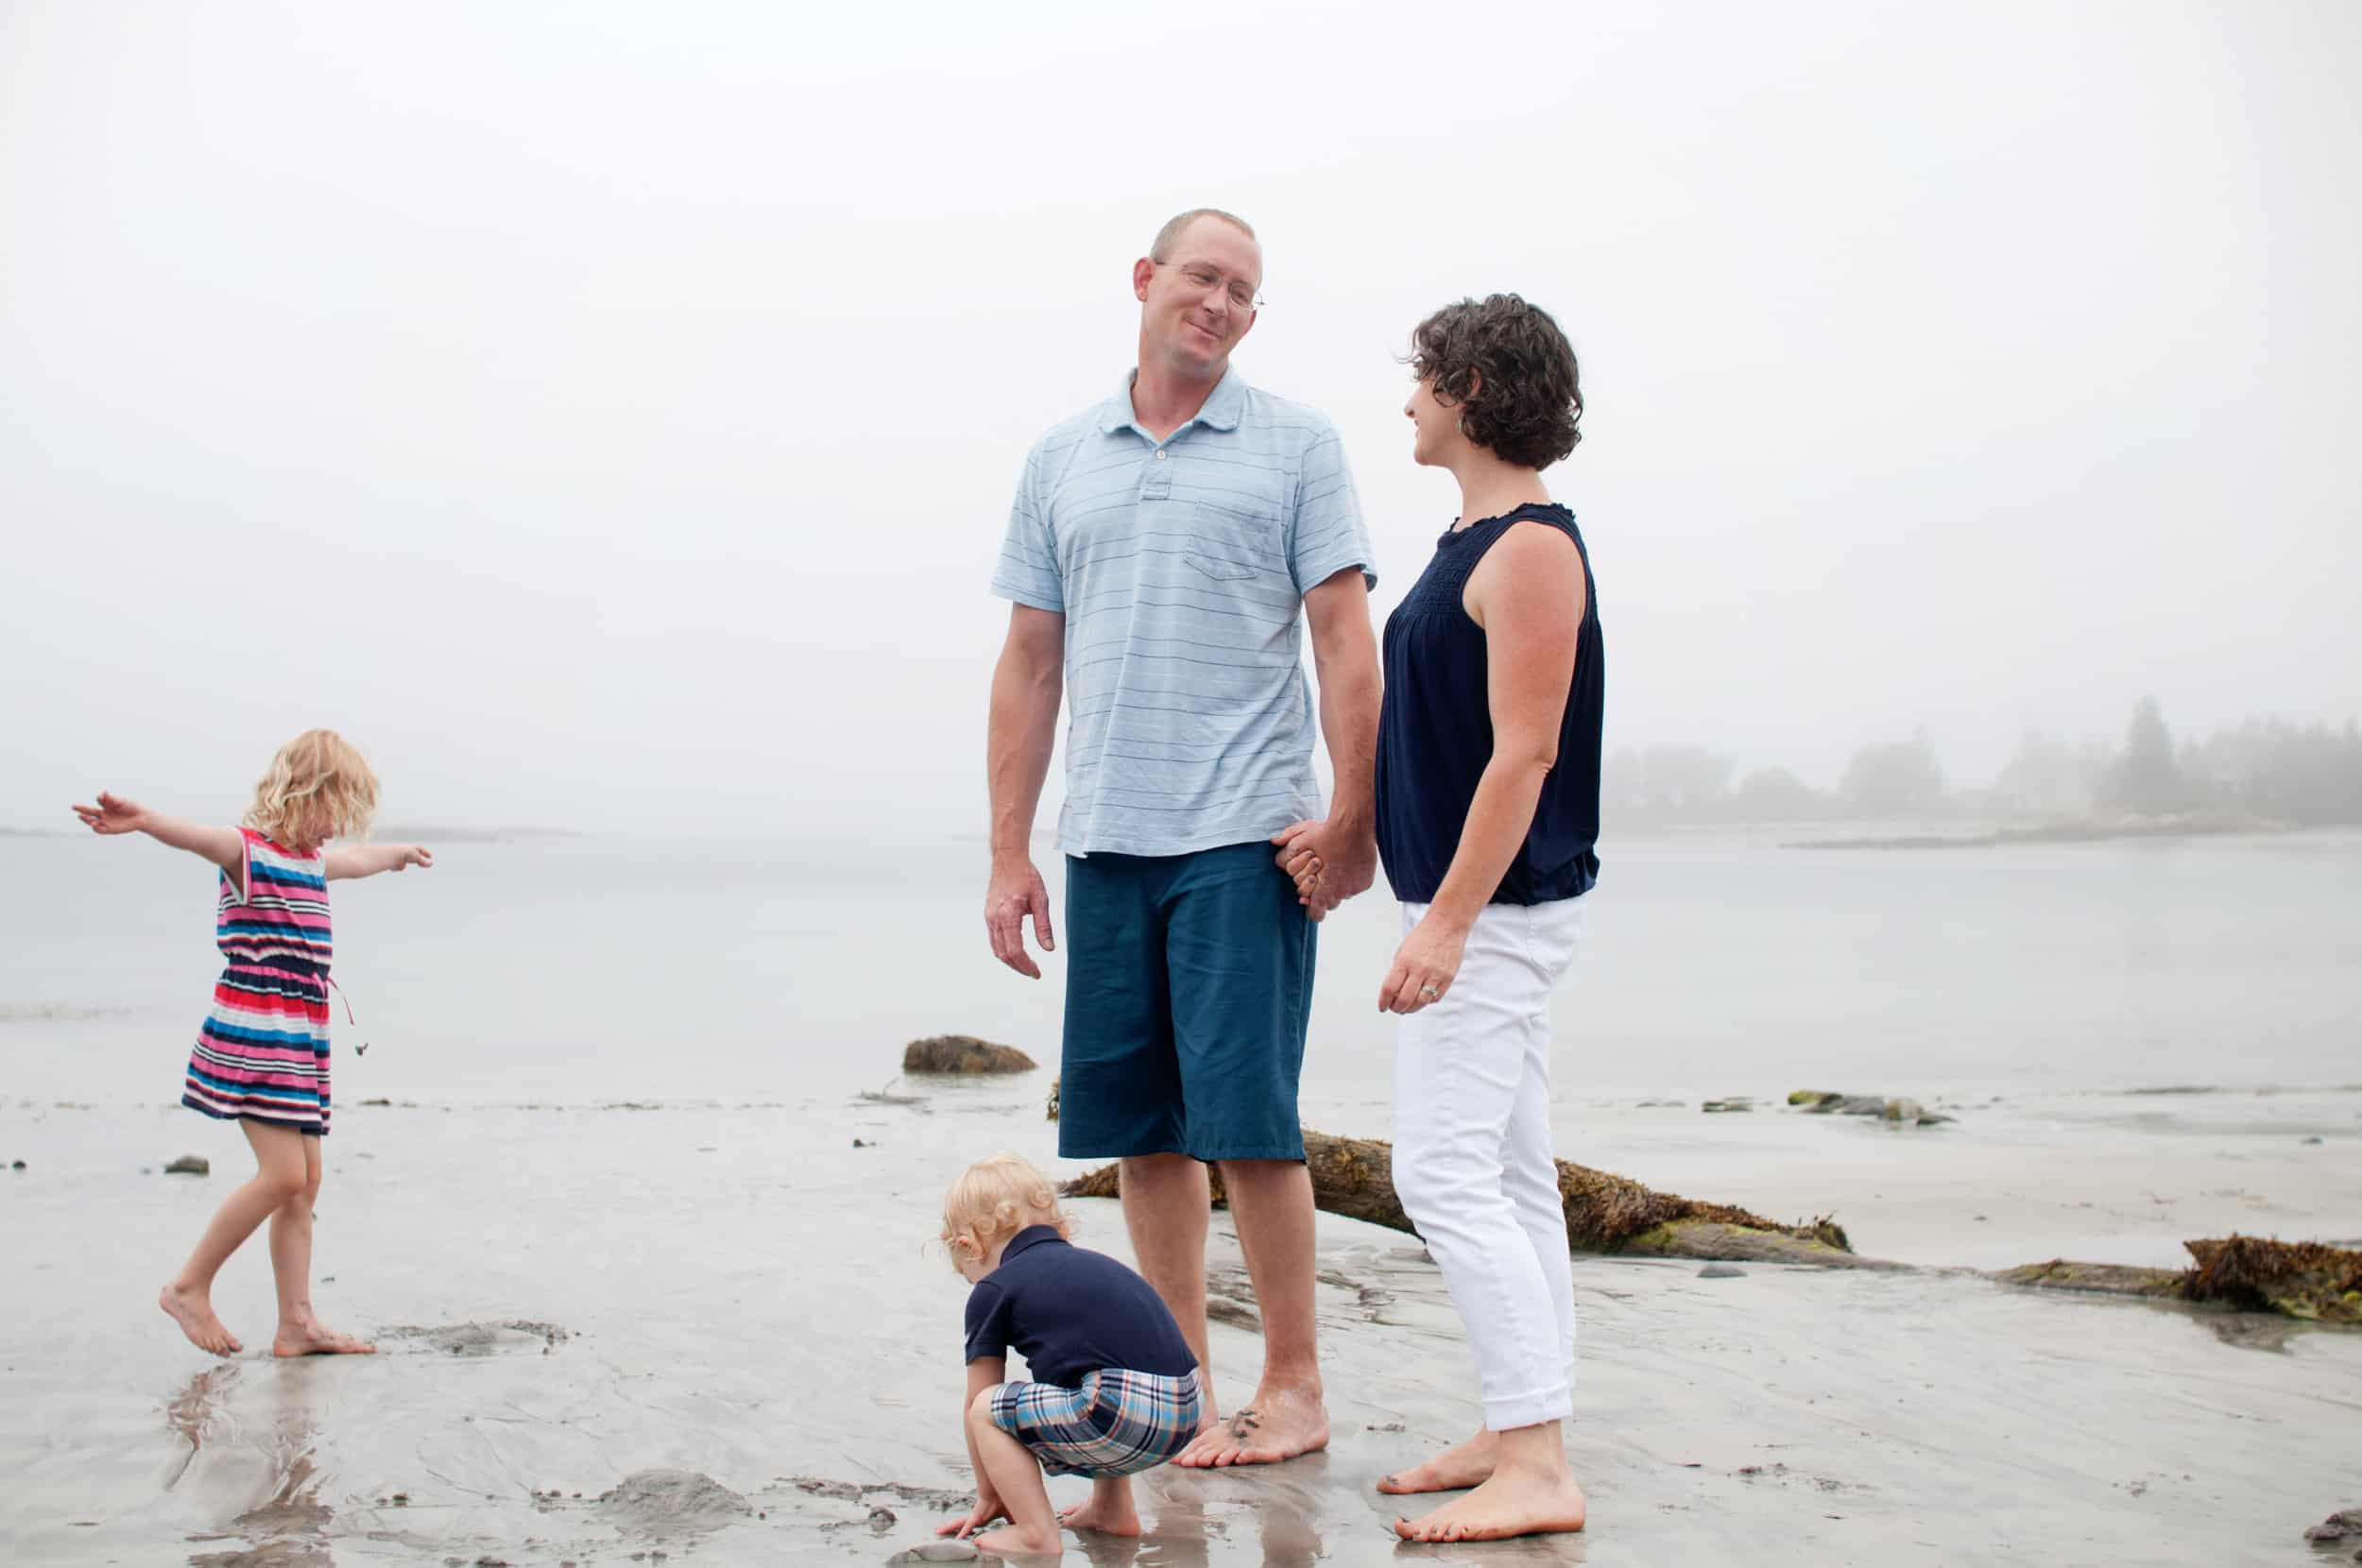 Family of four playing at the beach together in the fog